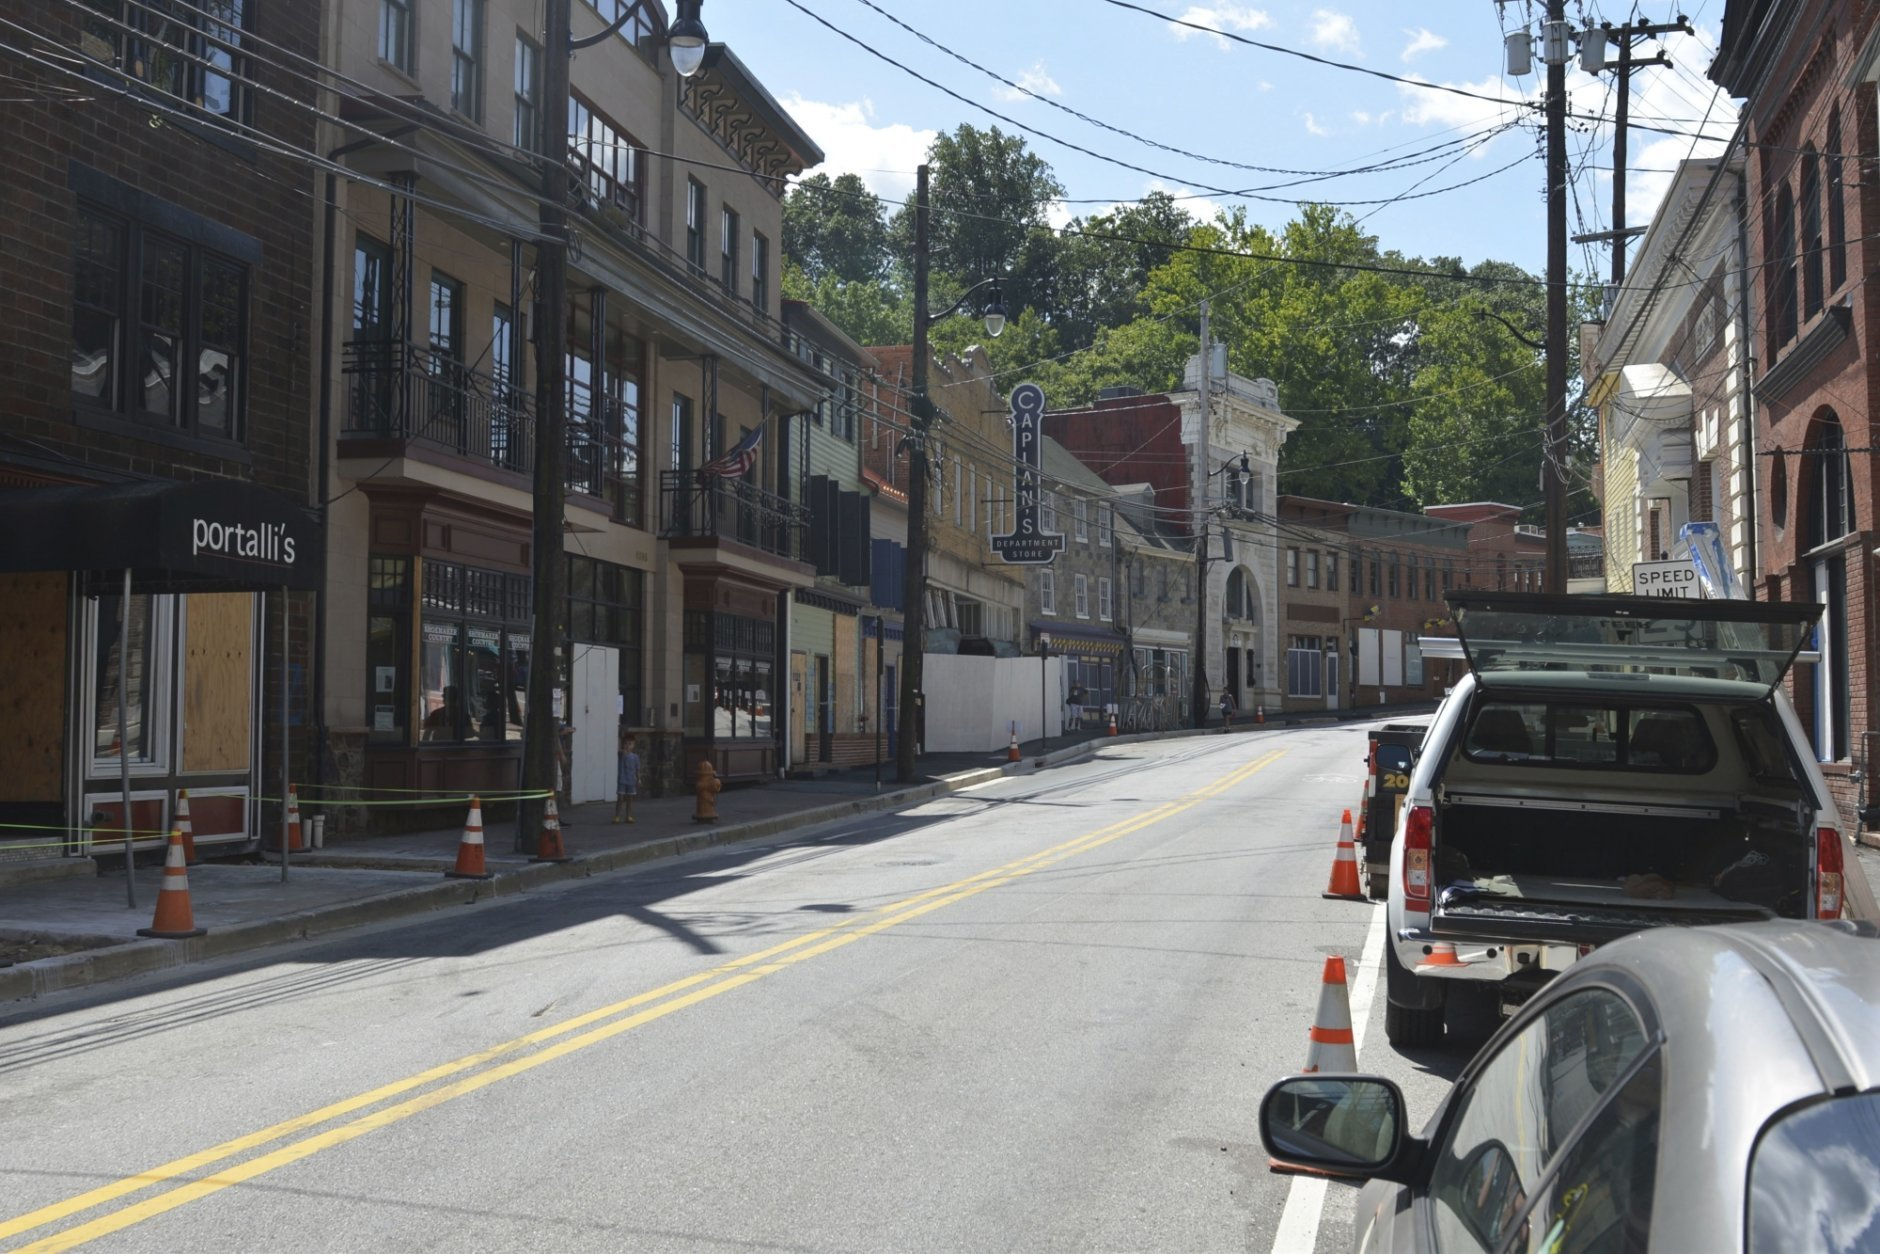 The main street of the former mill town is damaged from May floodwaters that killed a visitor and caused shops to be gutted Thursday, Aug. 23, 2018, in Ellicott City, Md. A few months after floodwaters devastated the town's main street for the second time in two years, authorities are moving to demolish roughly 5 percent of Ellicott City's historic district. (AP Photo/David McFadden)